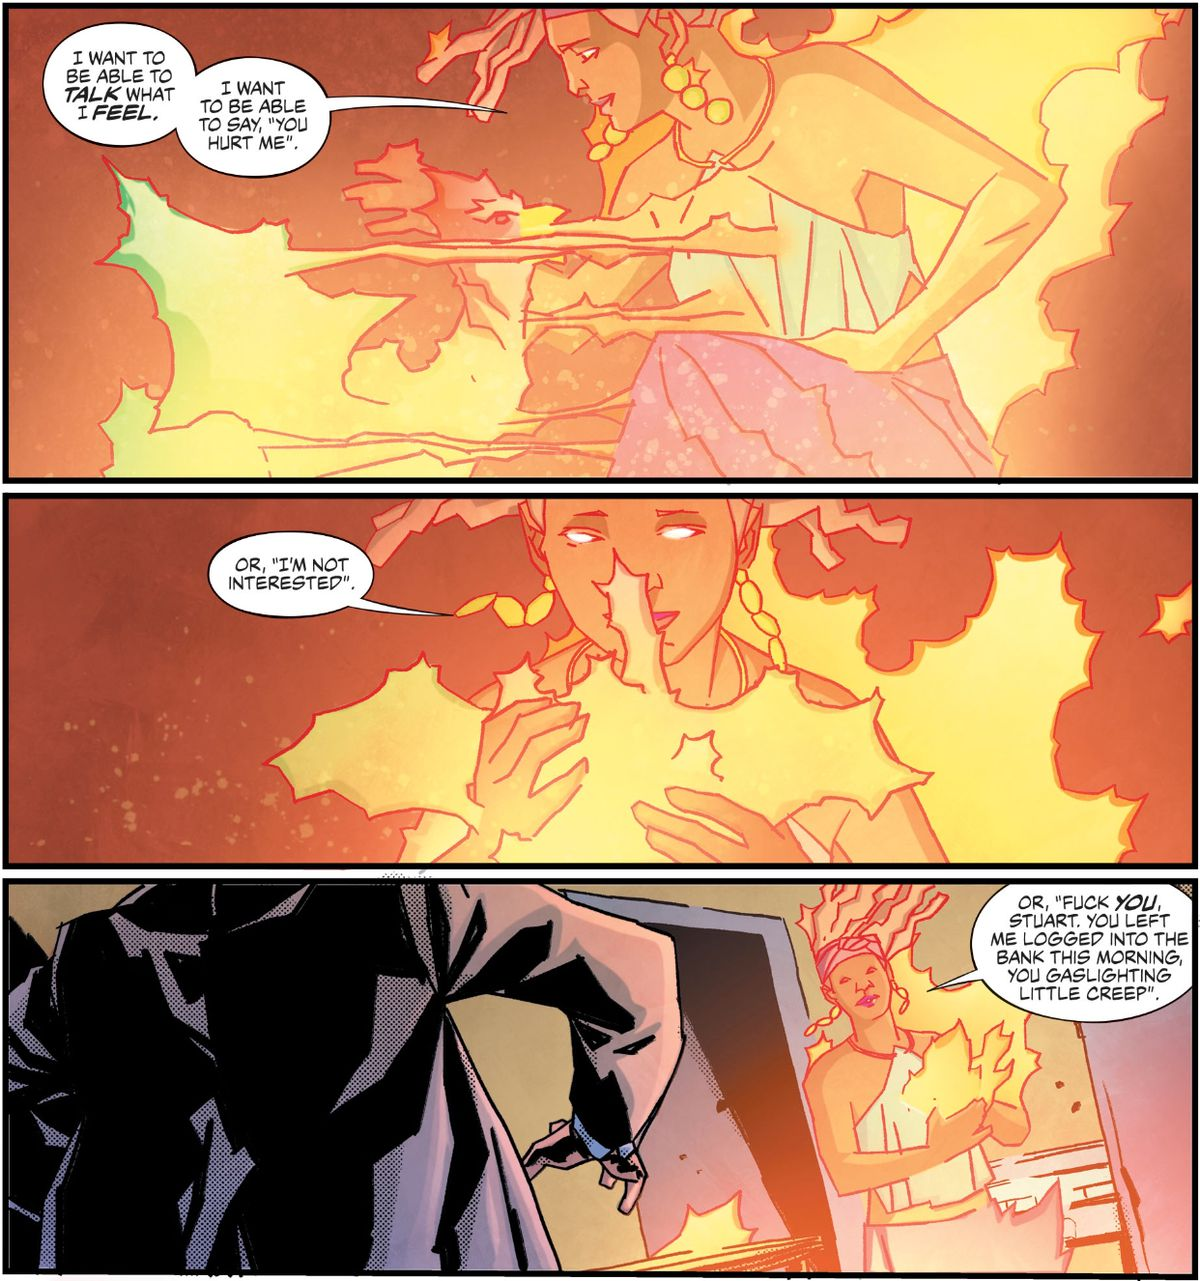 Djuna, wreathed in fire, embraces the cockatrice creature who embodies her anger, and decides she's not going to take it anymore, in House of Whispers #14, DC Comics (2019).